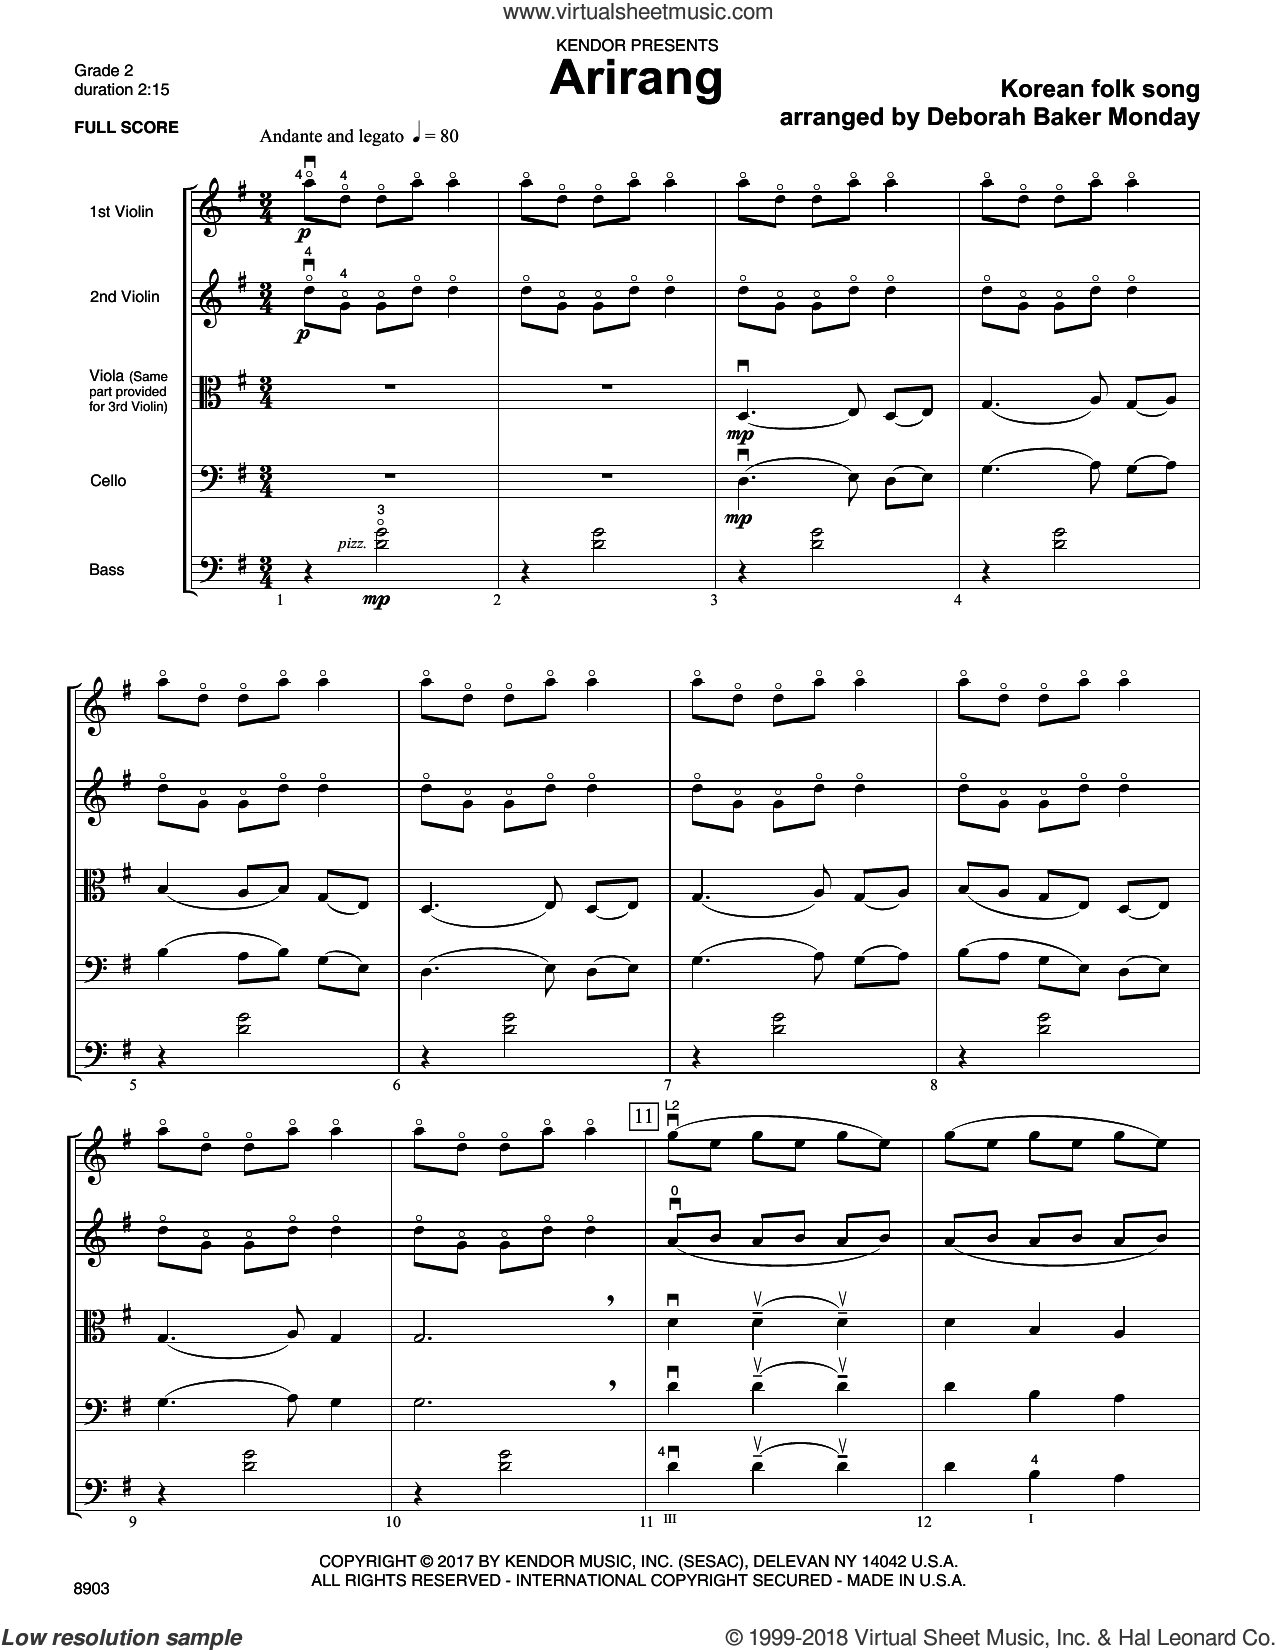 Arirang (COMPLETE) sheet music for orchestra by Deborah Baker Monday and Korean folk song, intermediate skill level